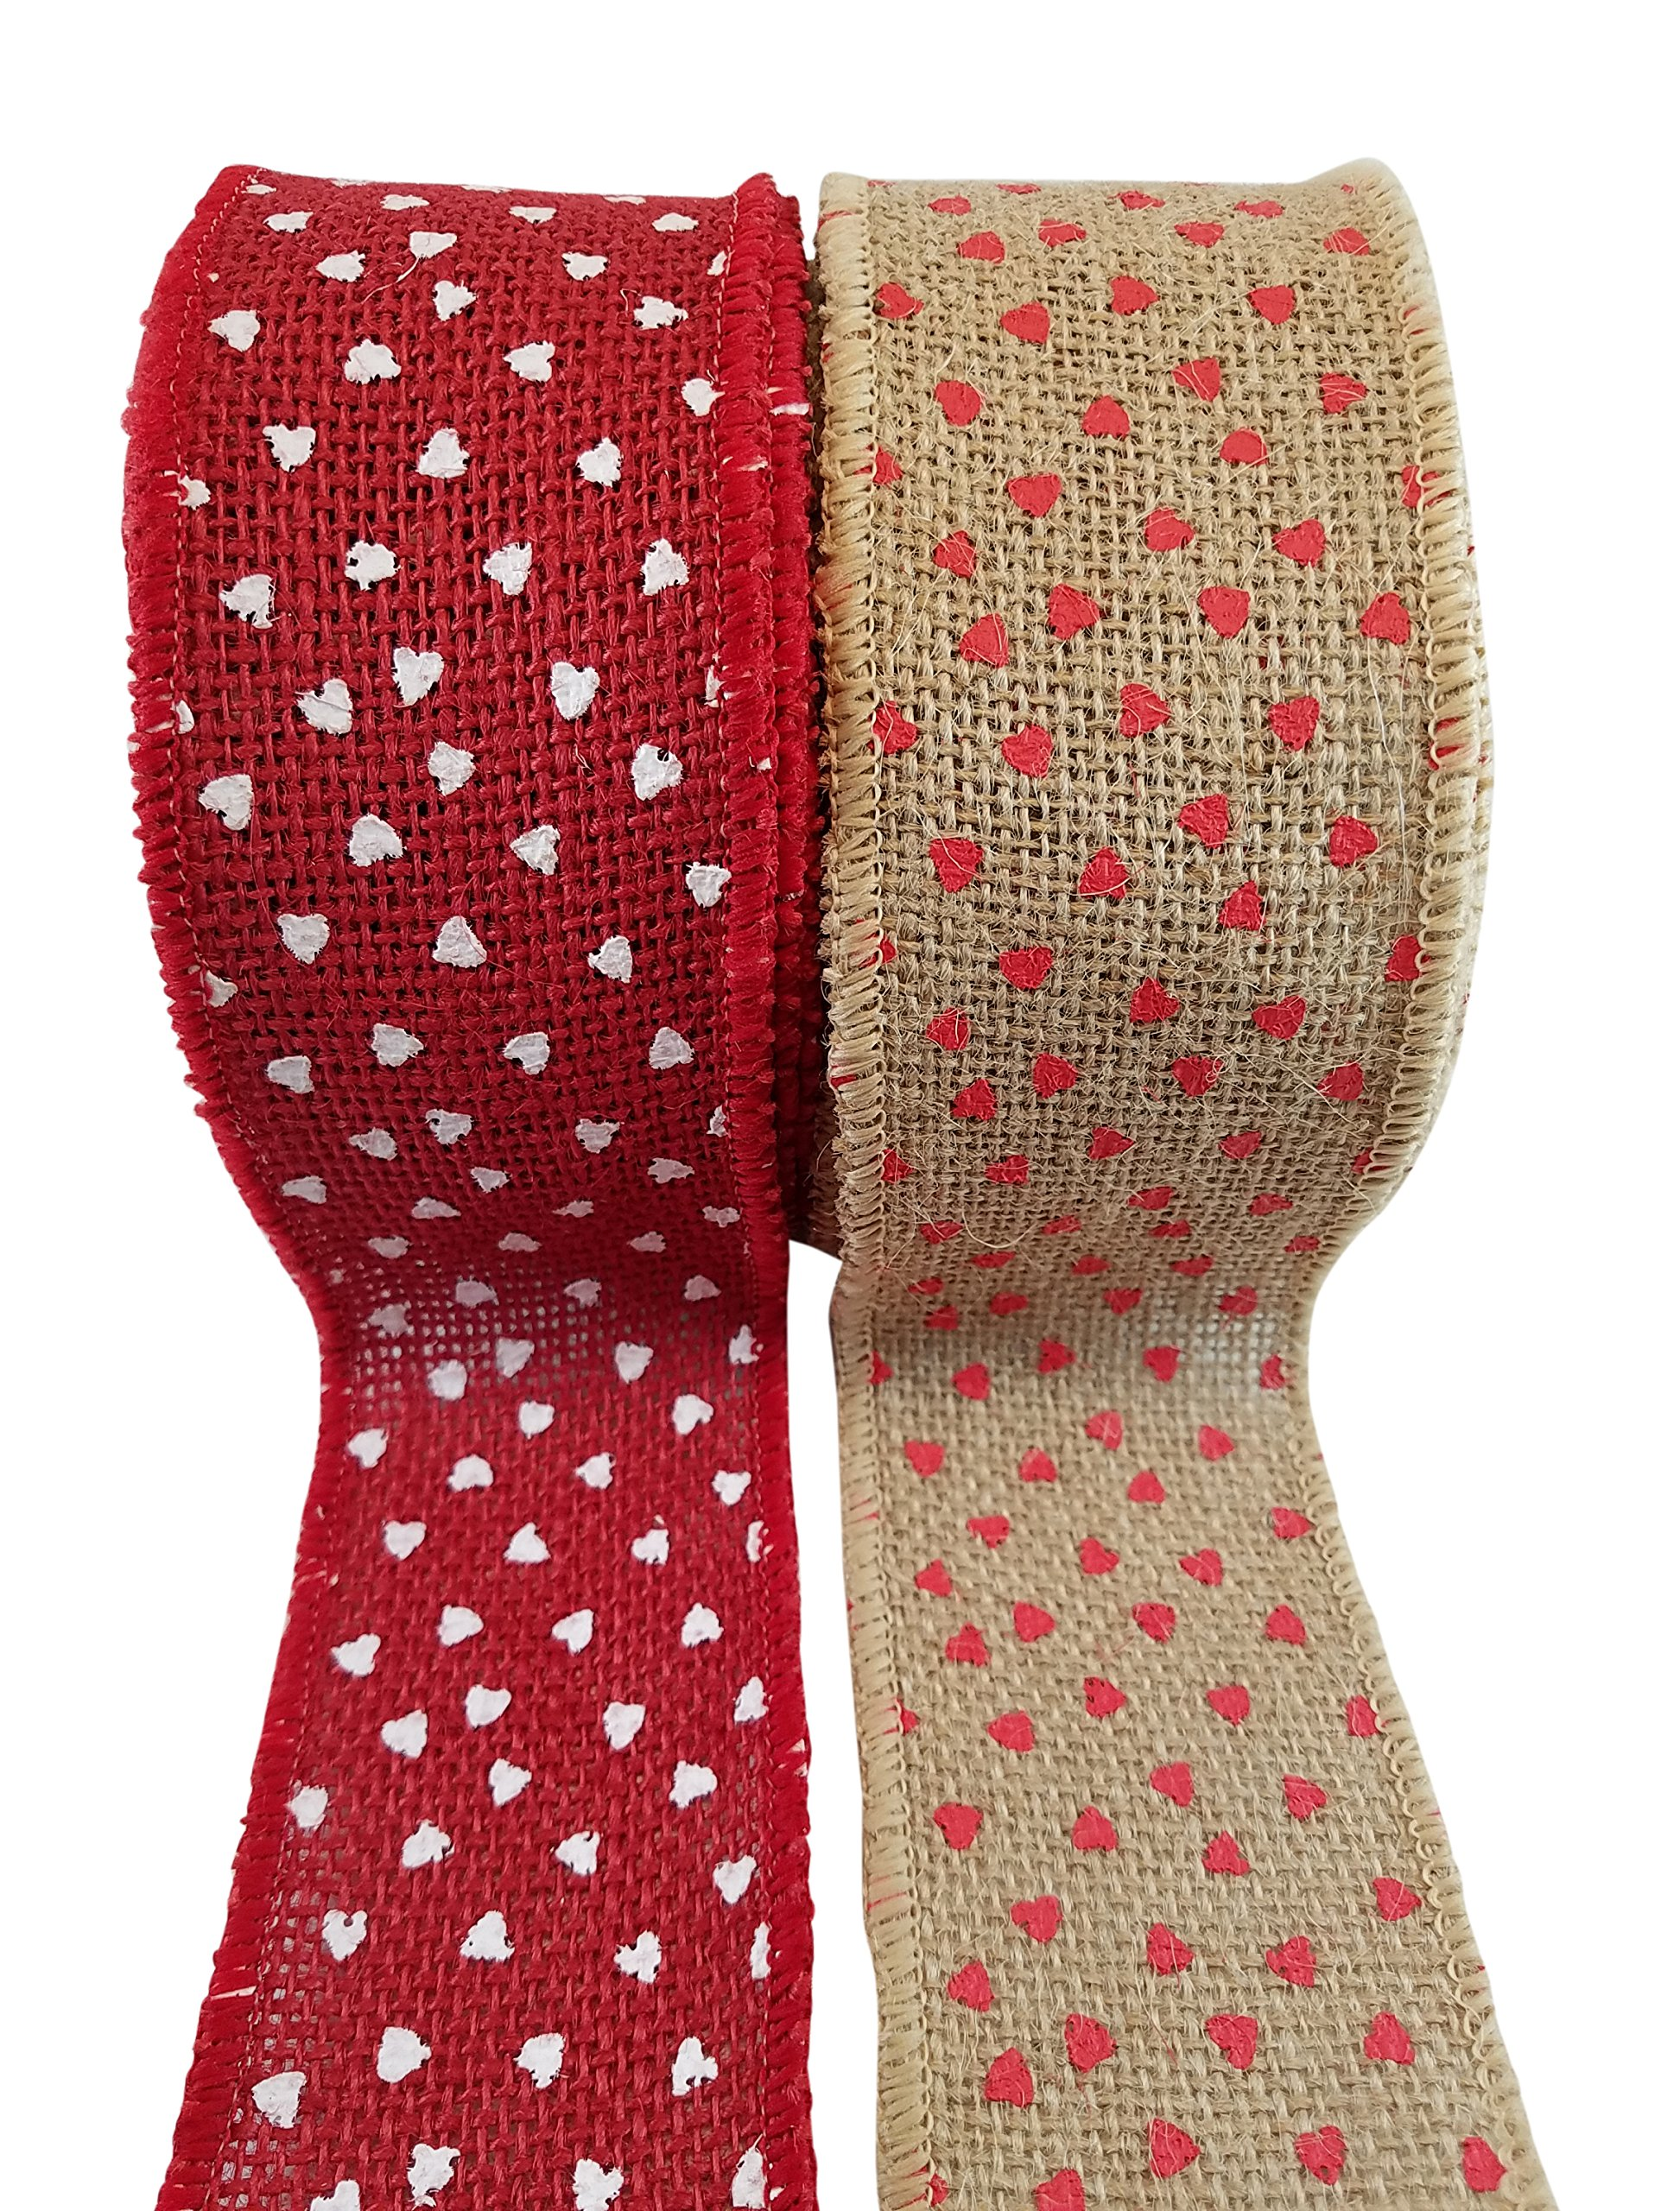 "Heart Printed Burlap Ribbon with Wired Edge – Red Hearts on Natural and White Hearts on Red – 2 Rolls, Each 2.5"" x 10 Yards"